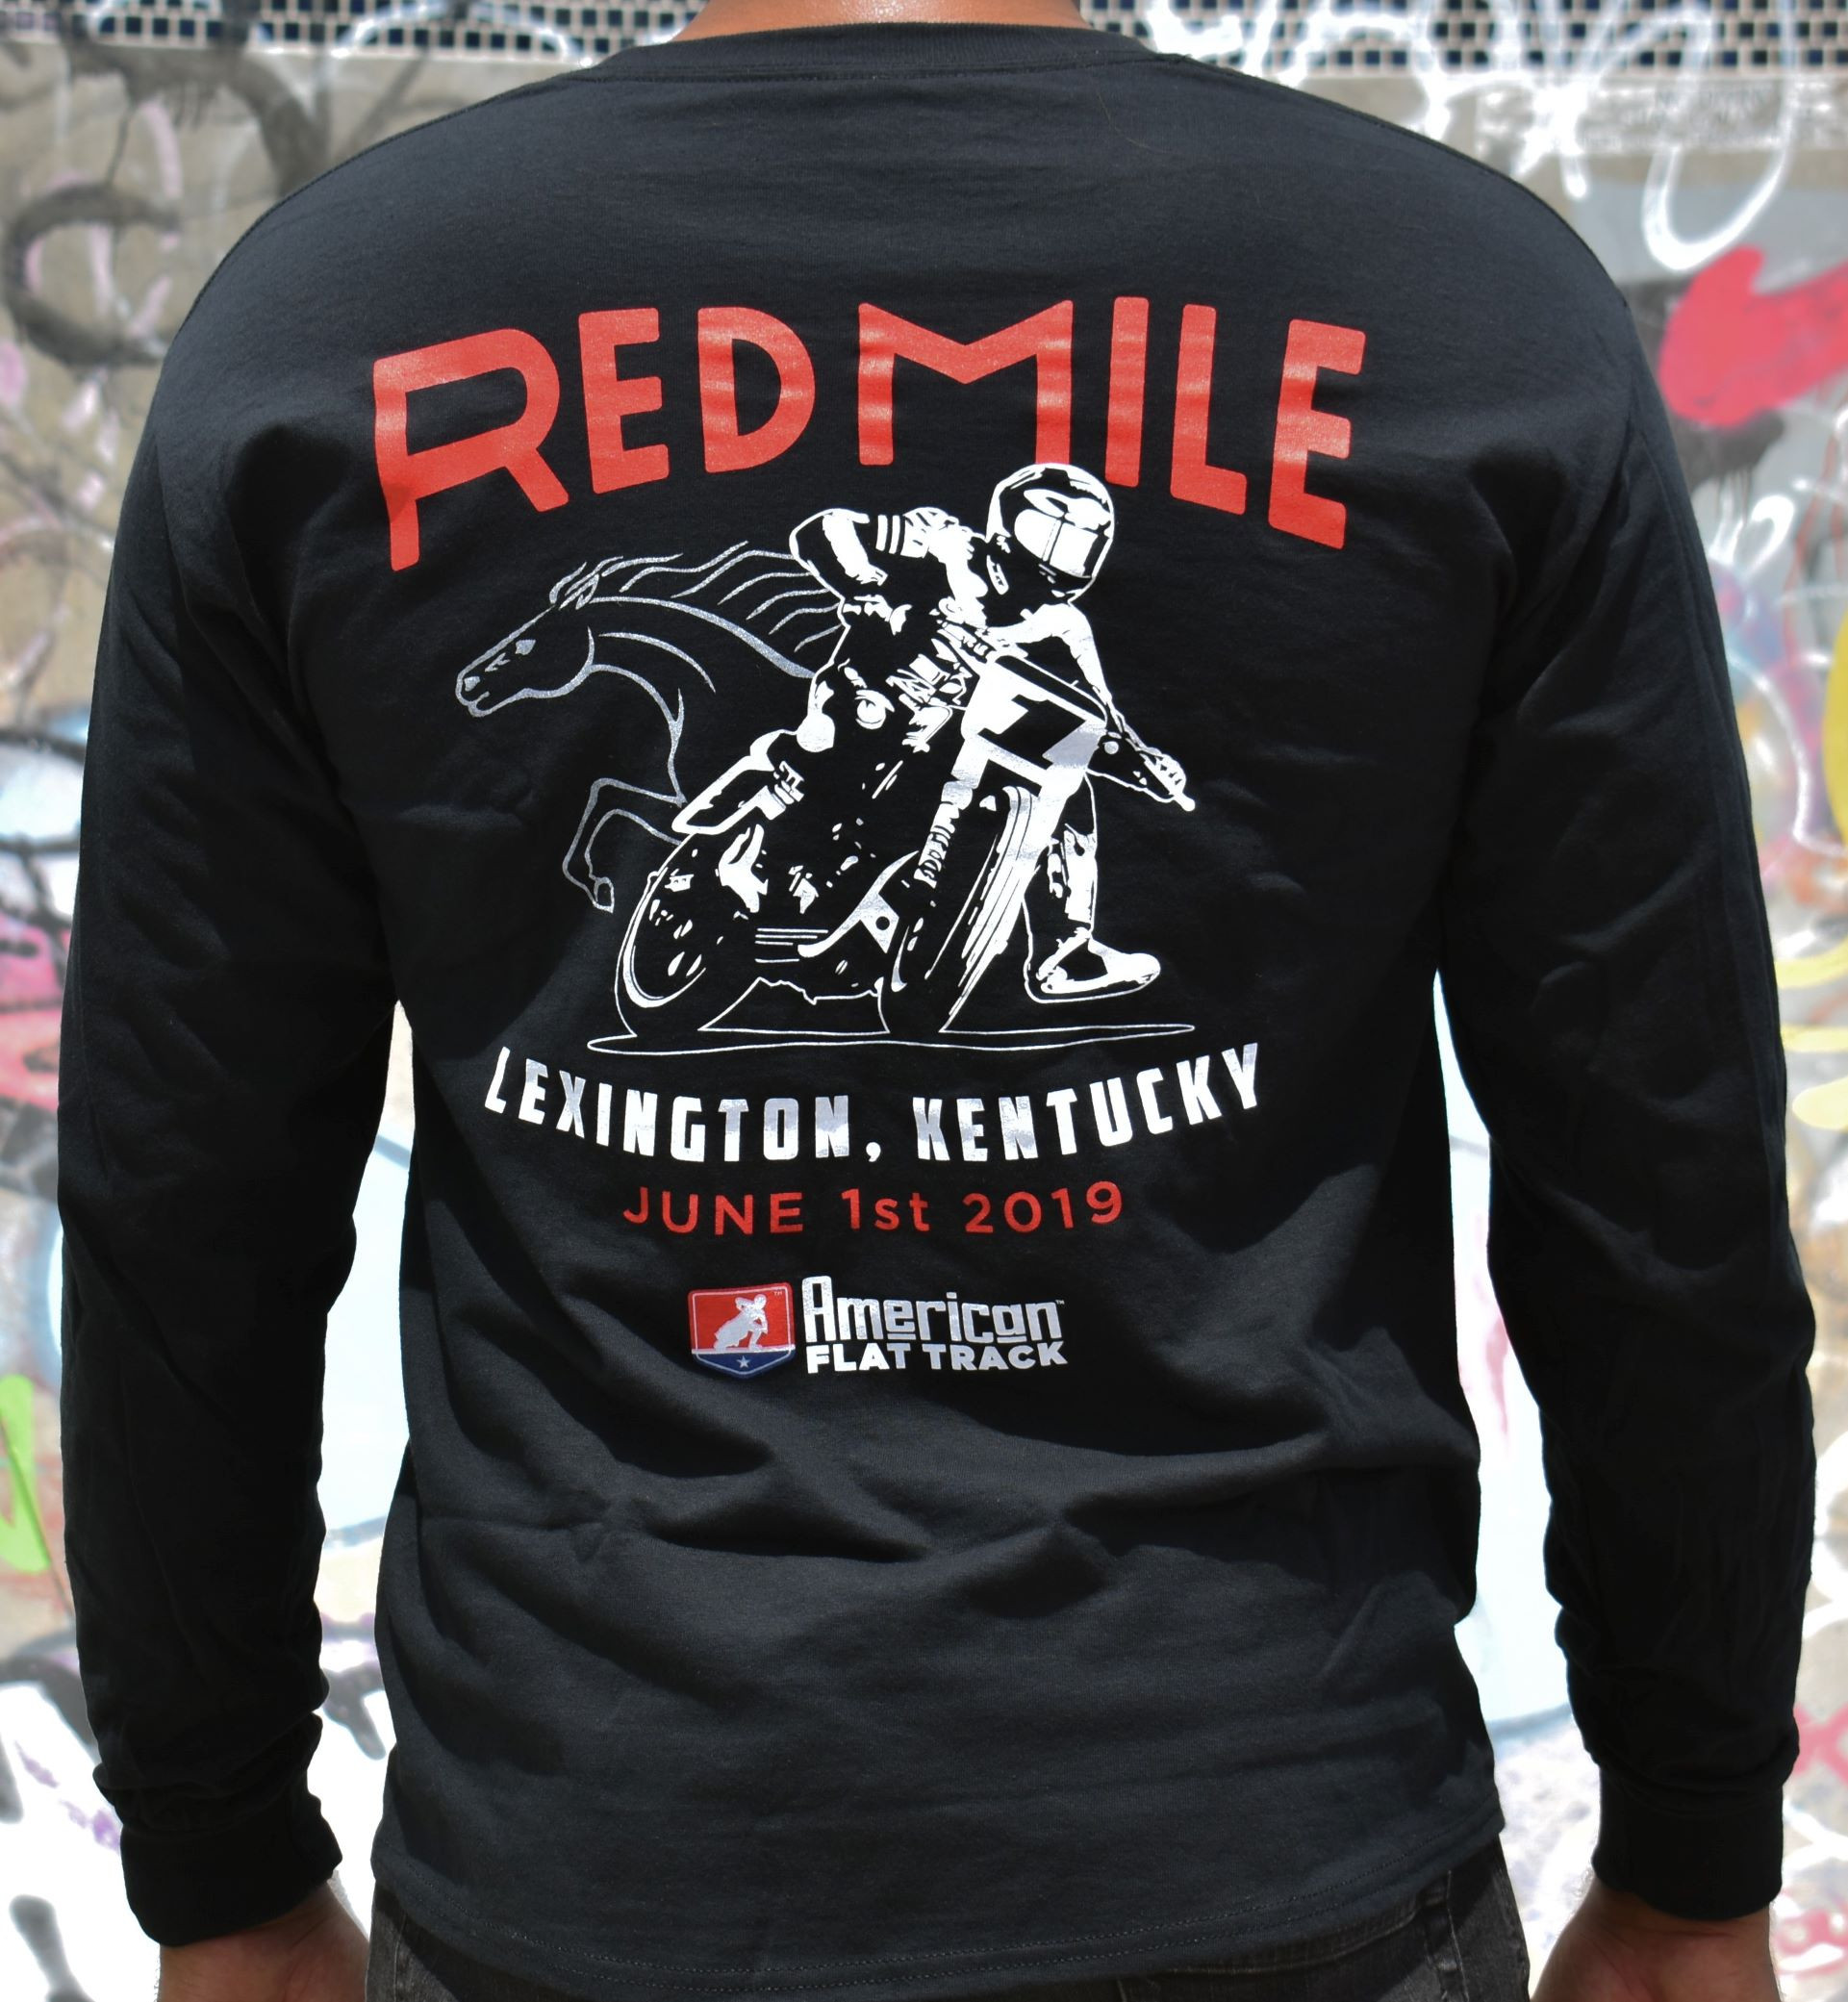 2019 Red Mile Long Sleeve Event T-Shirt